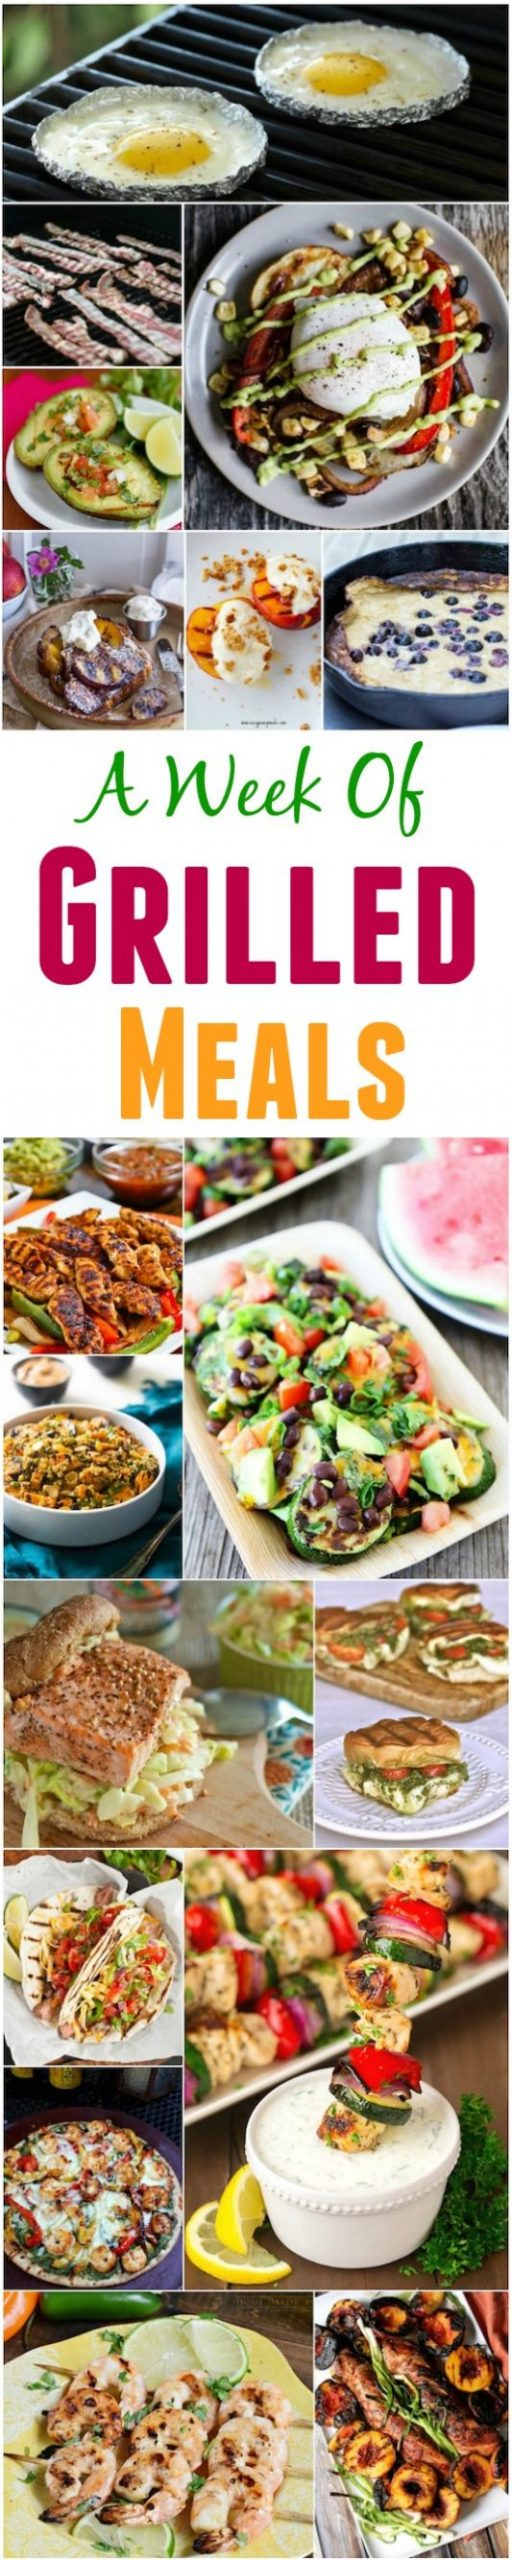 A Week of Grilled Meals